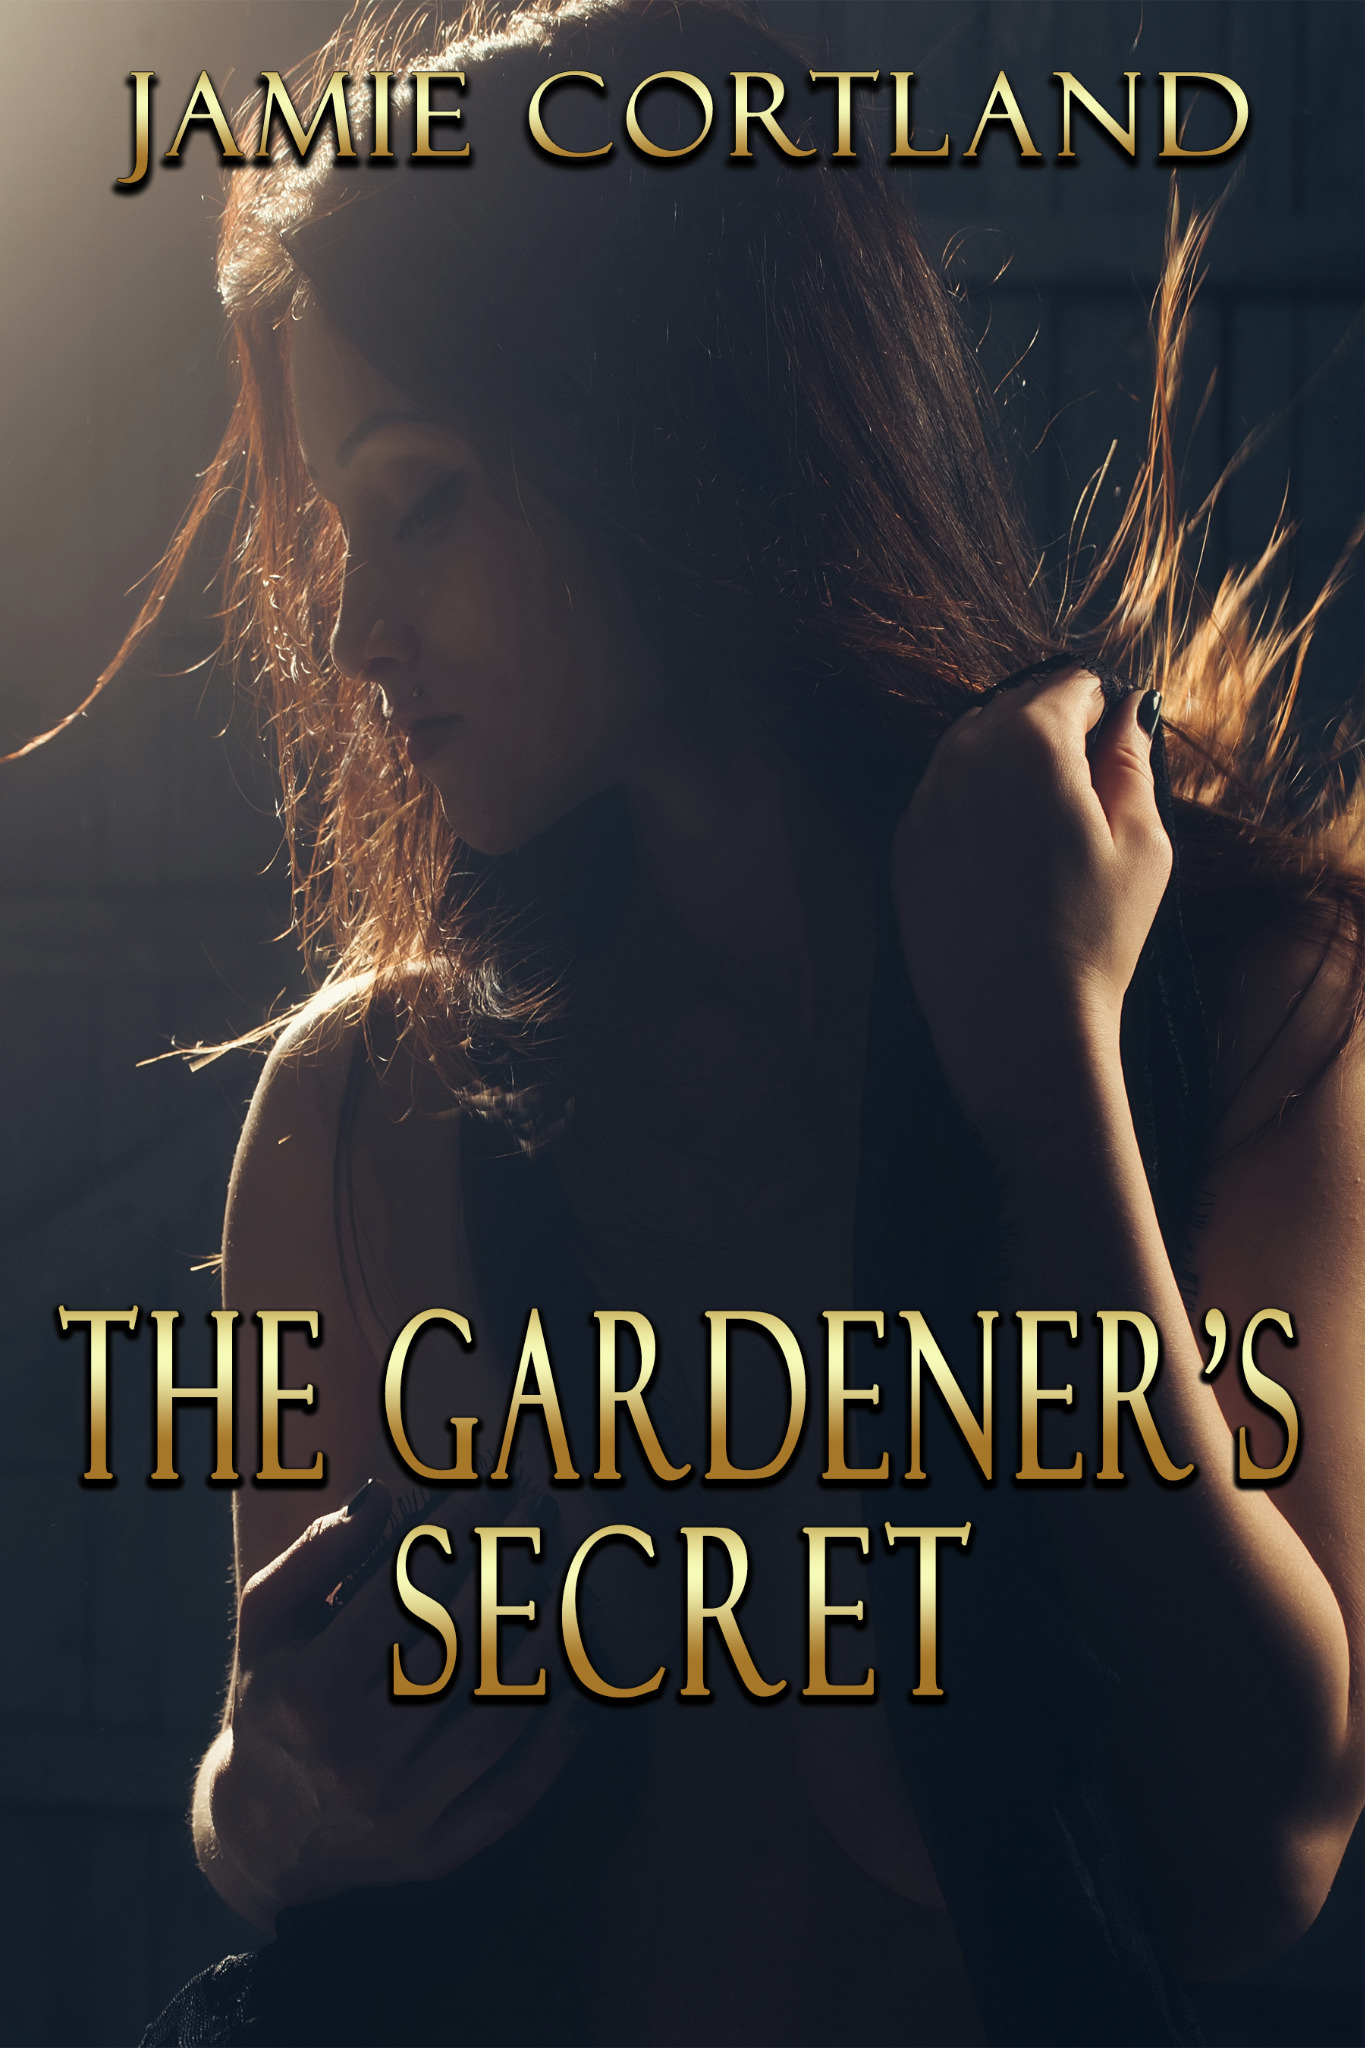 The Gardner's Secret